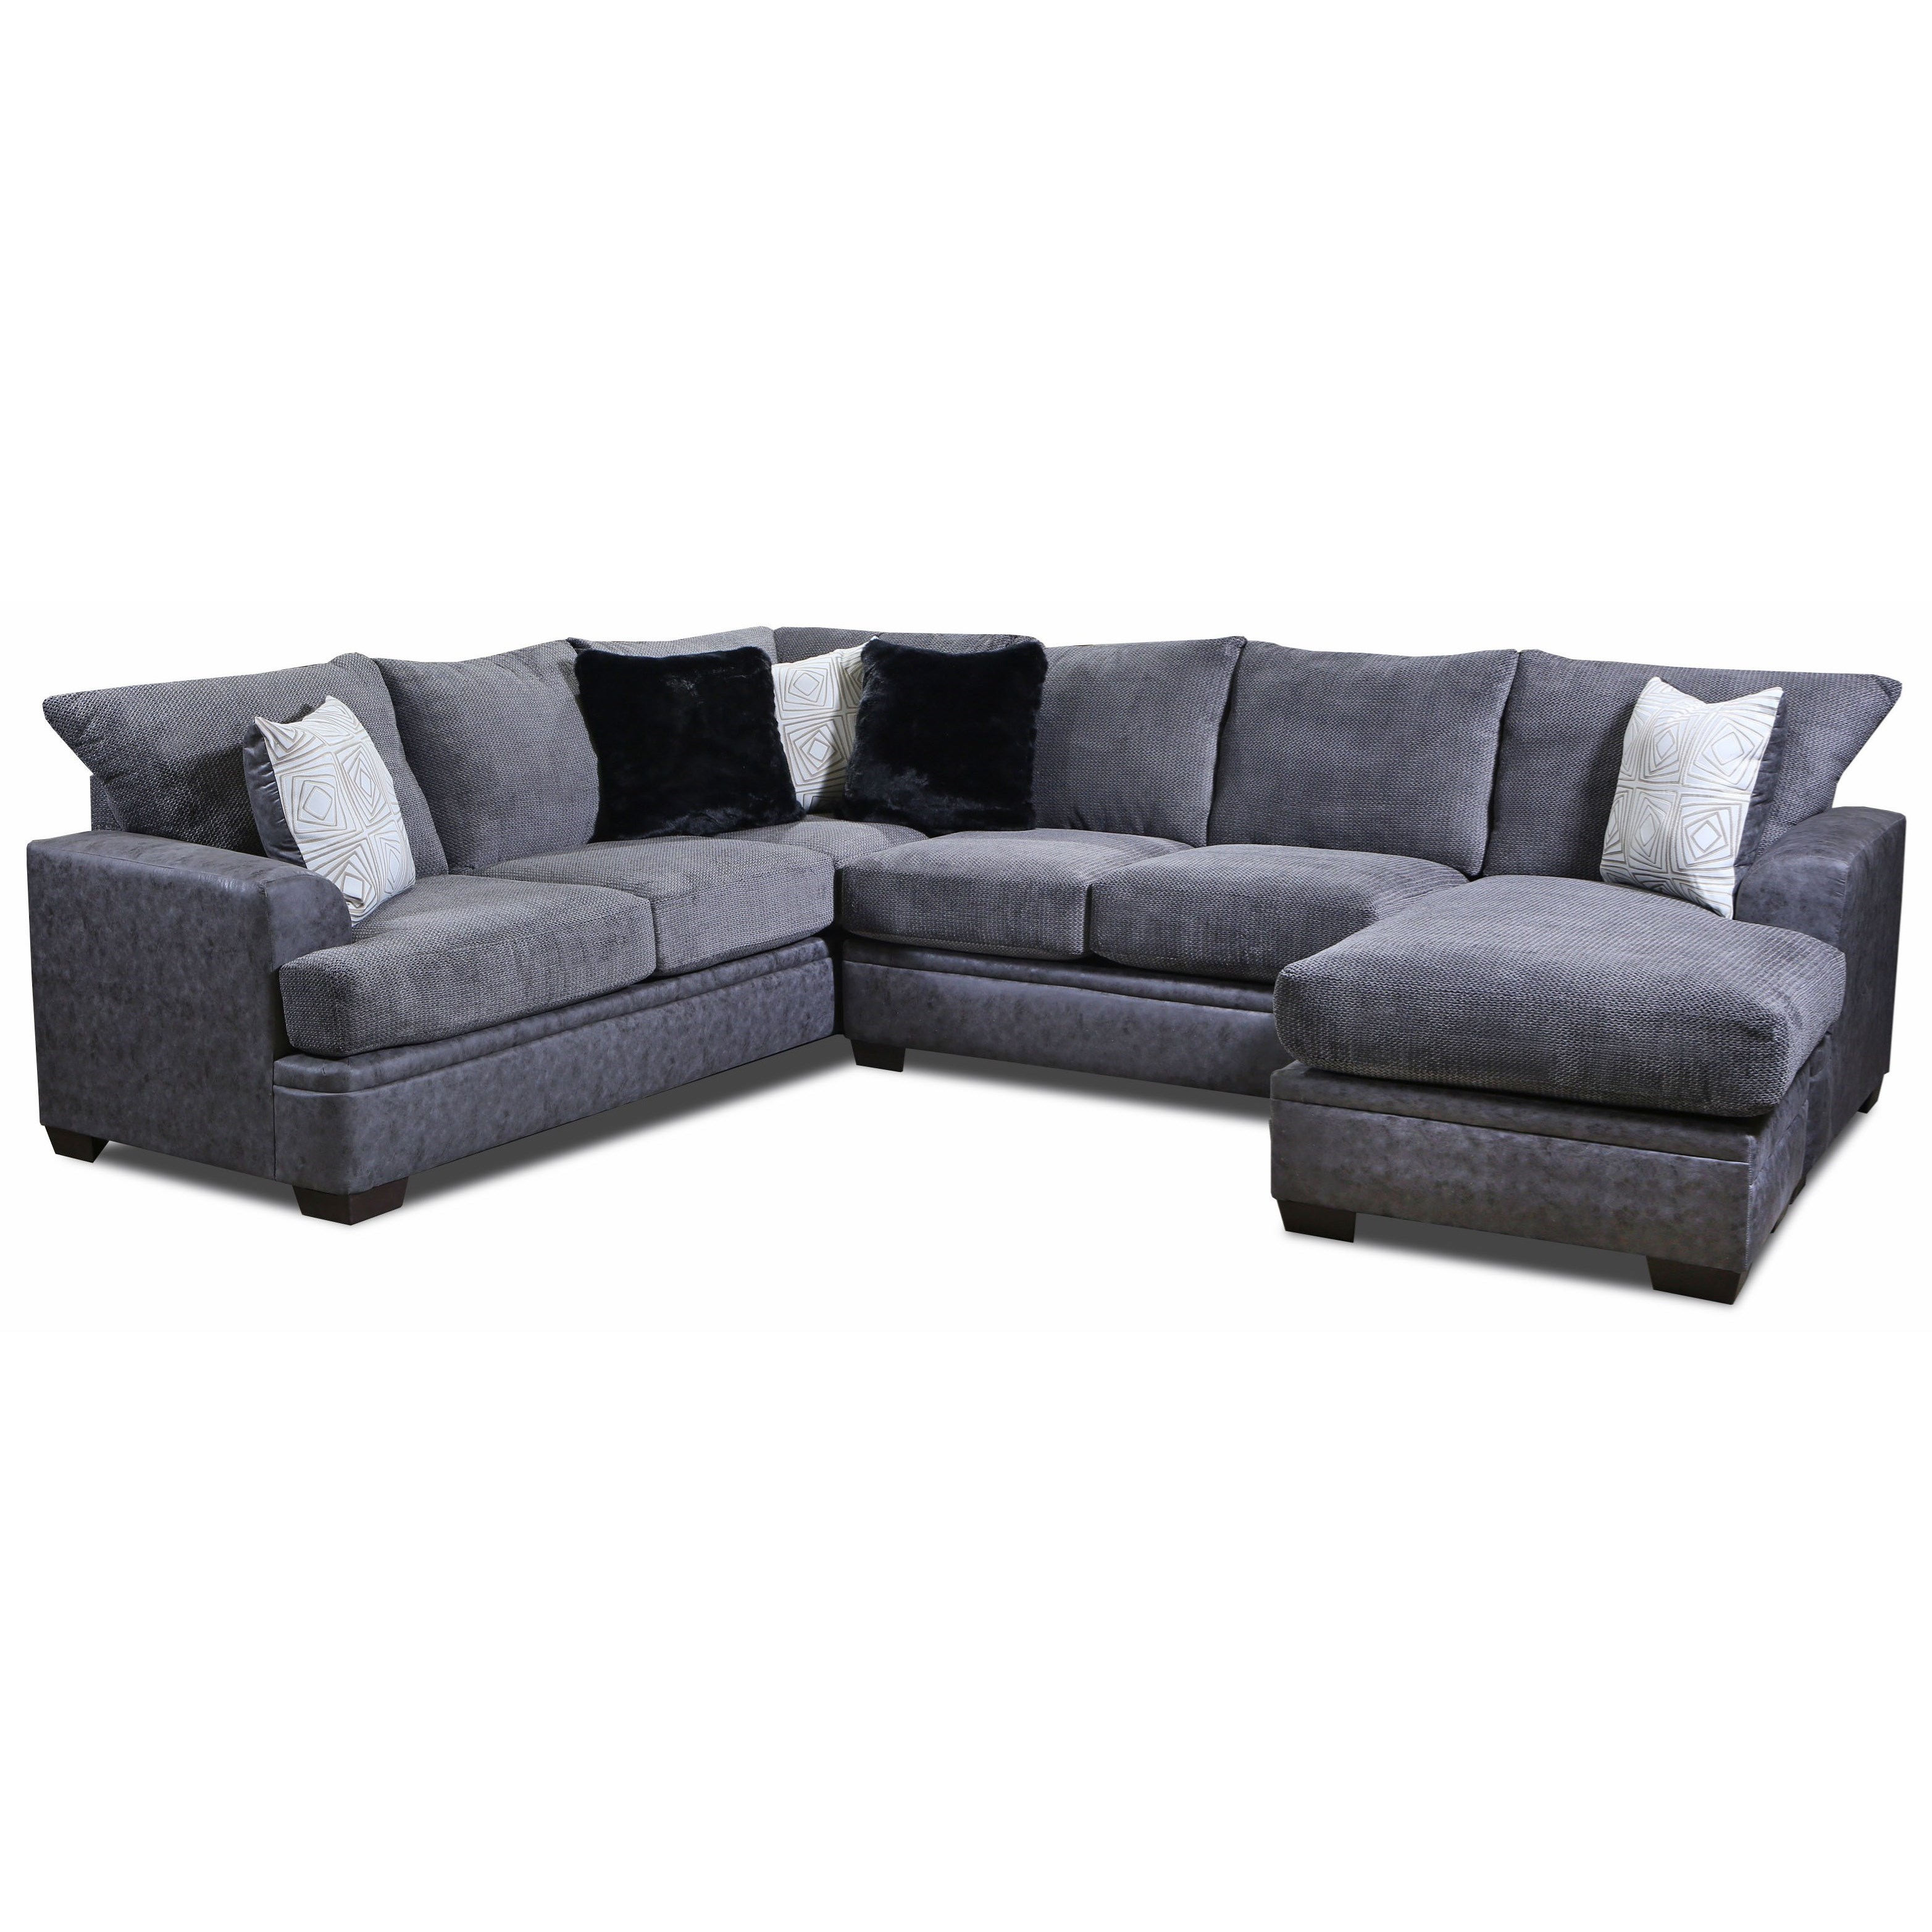 Vendor 610 6800 0177677 Sectional Sofa With Right Side Chaise Becker Furniture Sectional Sofas